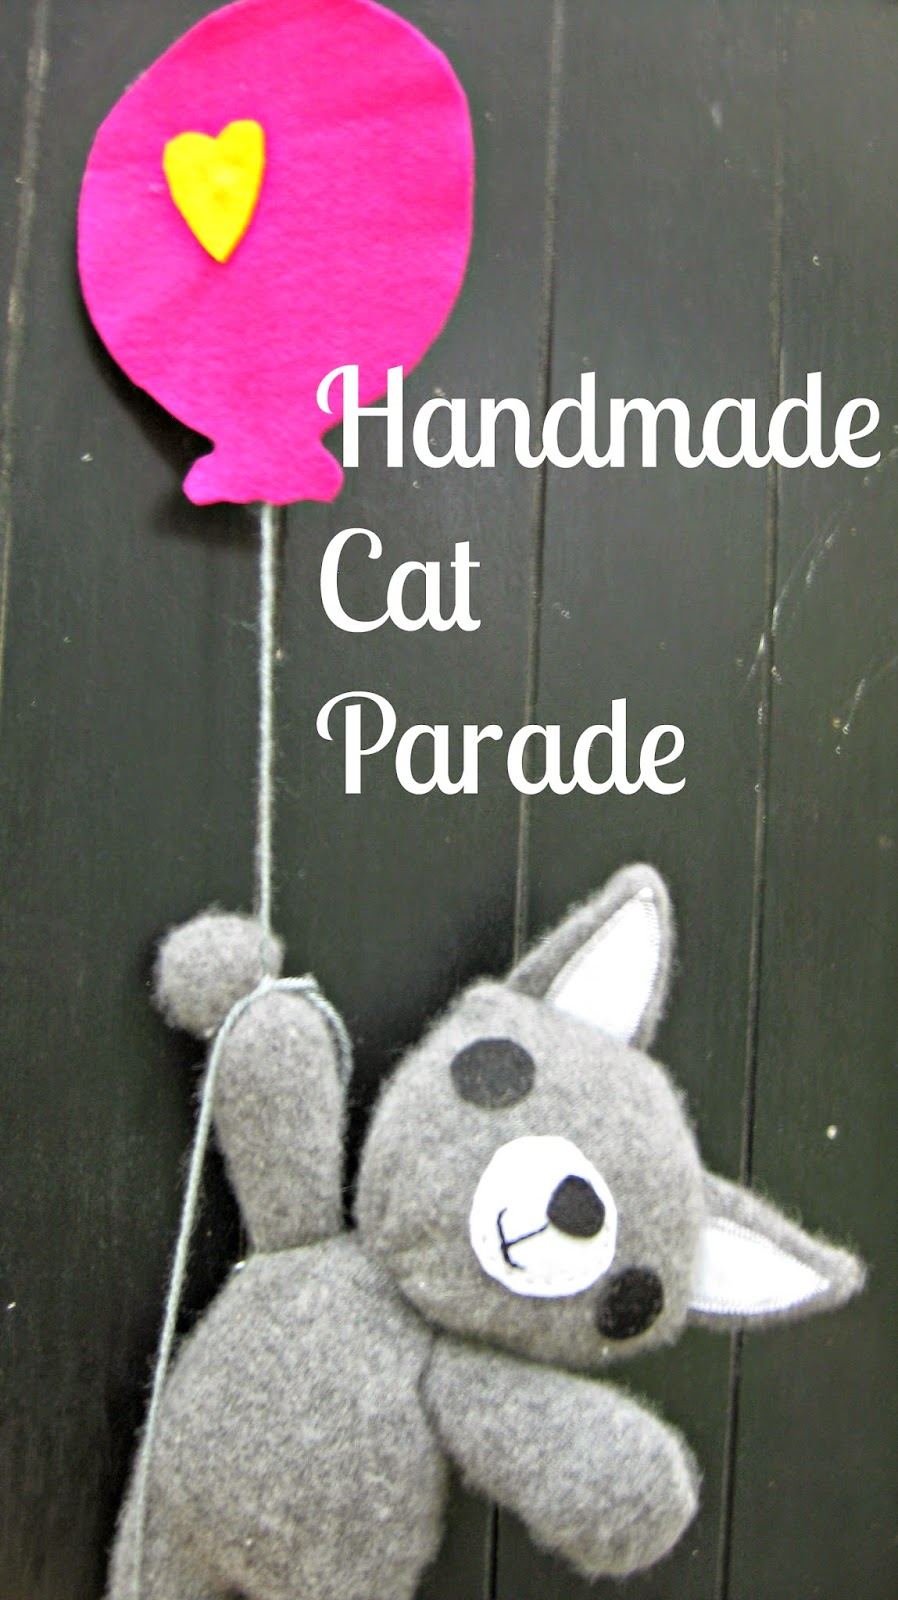 https://www.etsy.com/shop/HandmadeCatParade